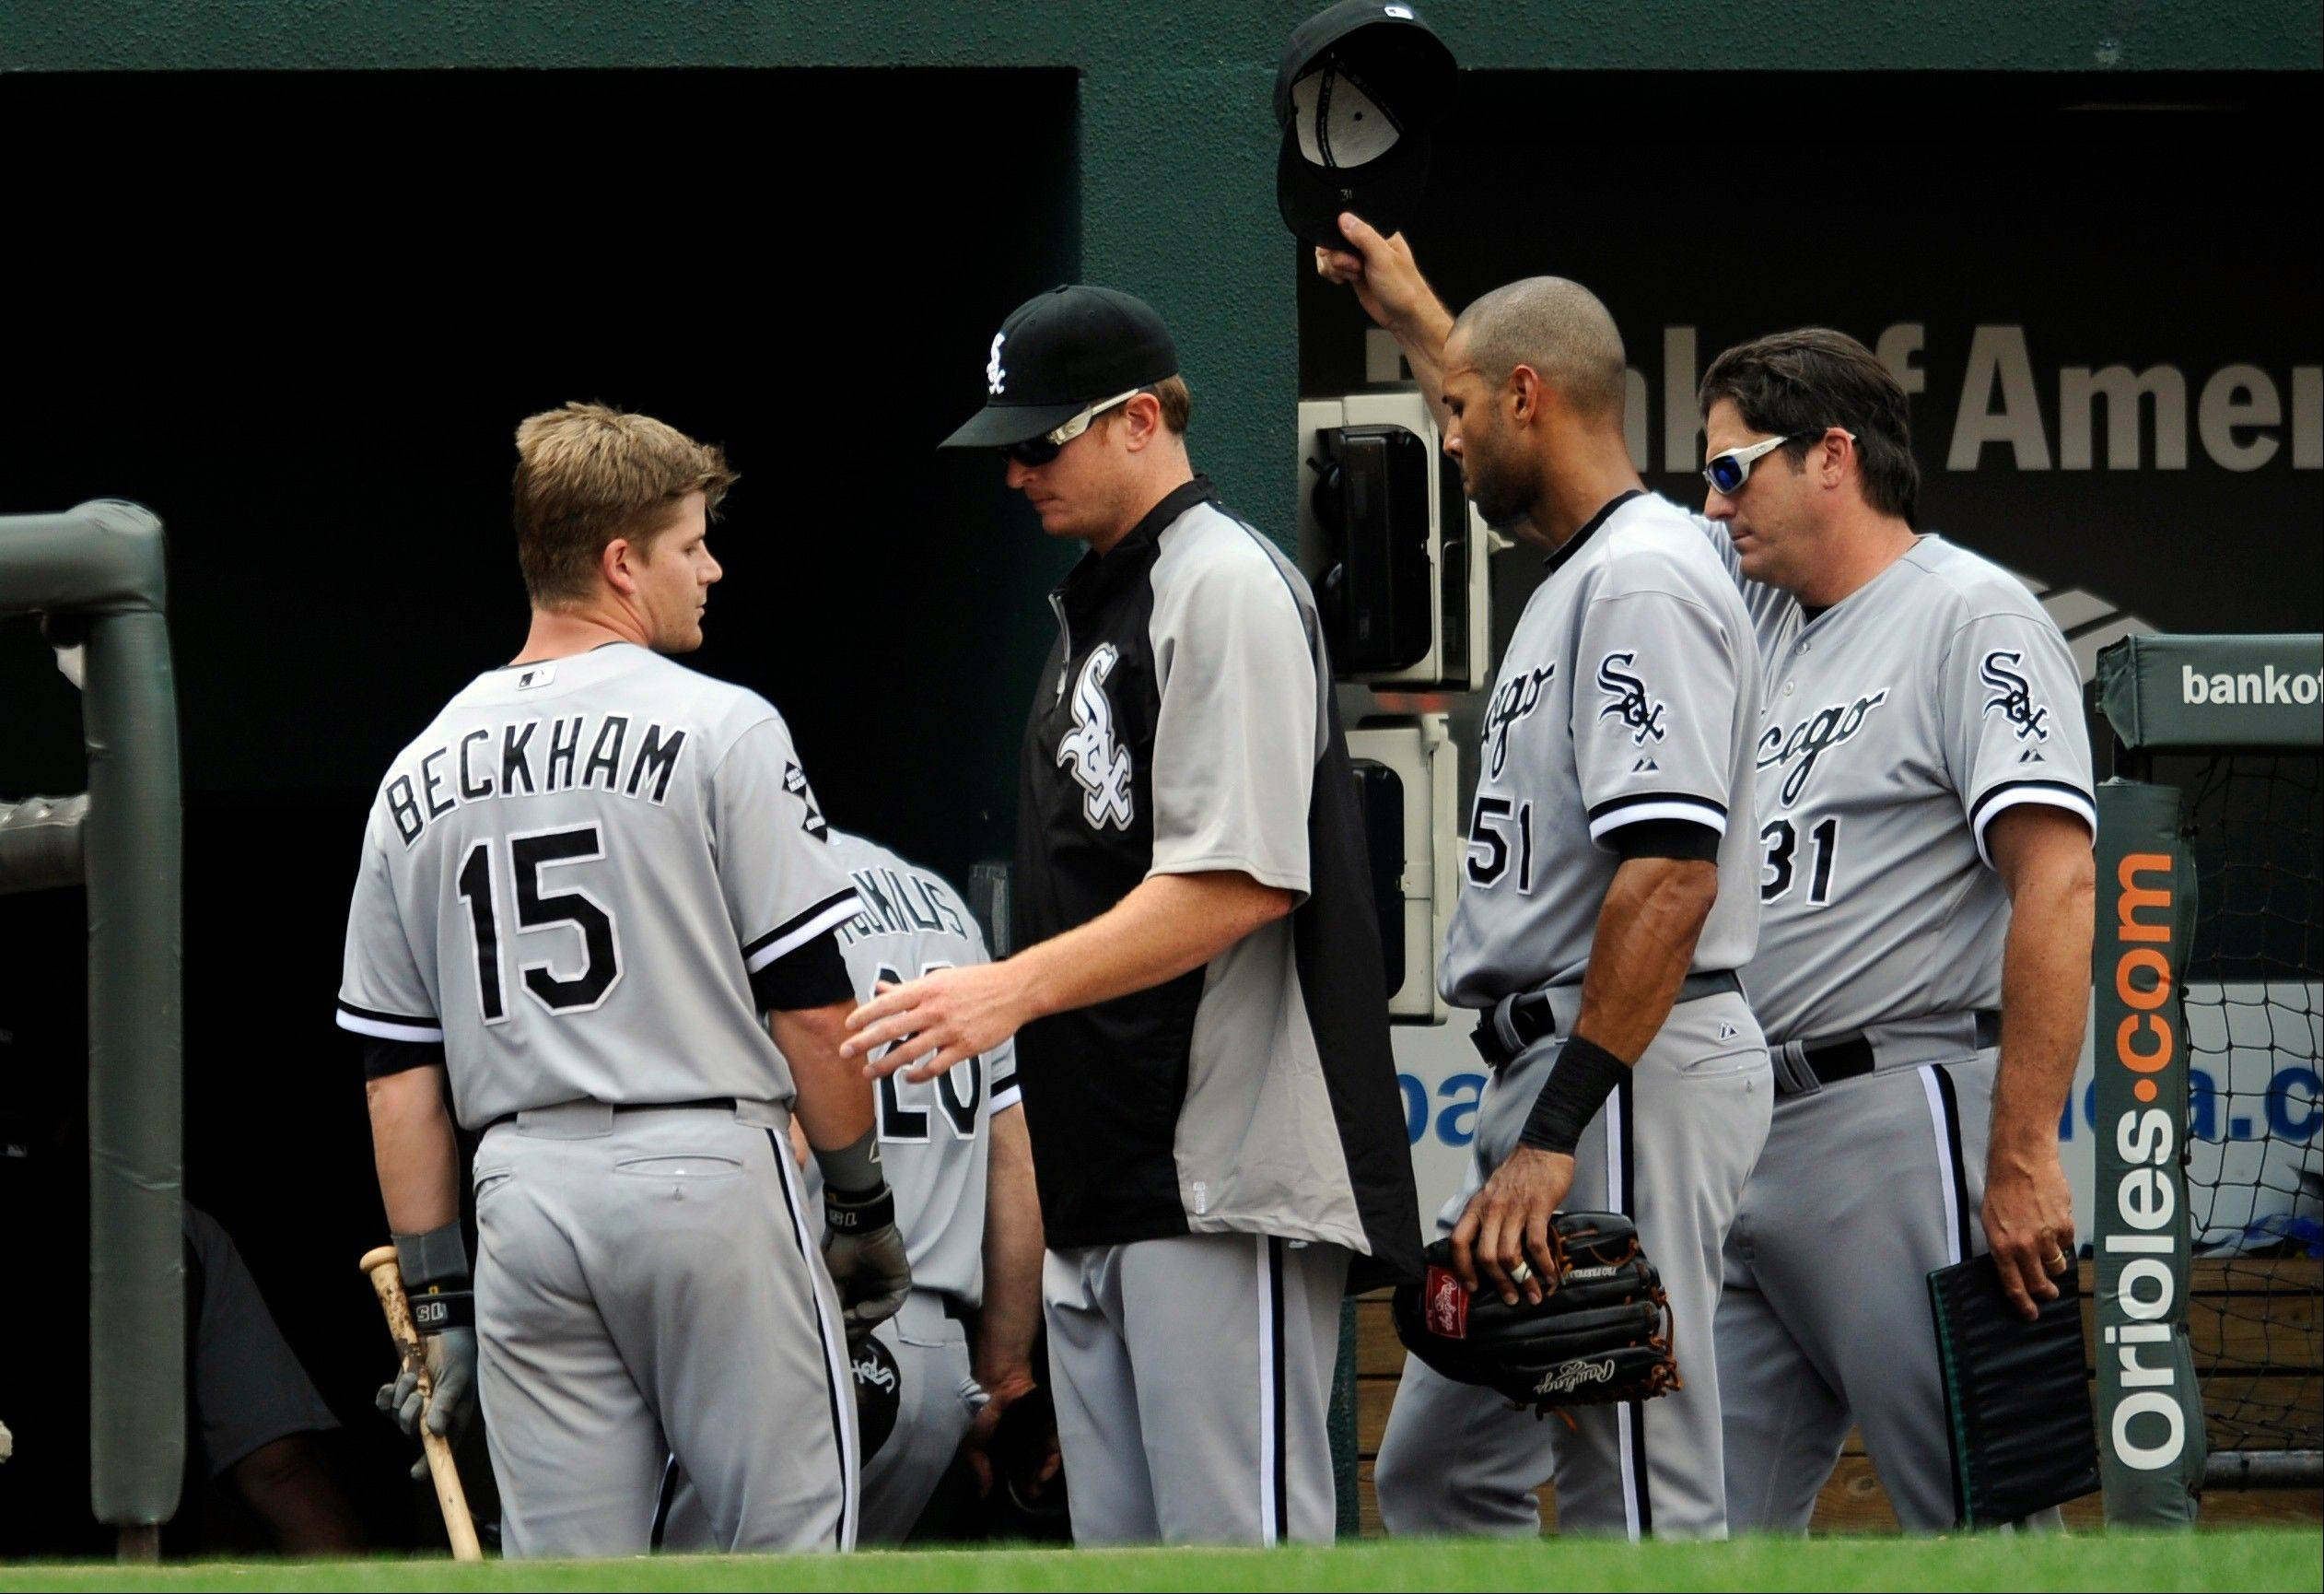 The White Sox�s Gordon Beckham (15), Alex Rios (51), batting coach Jeff Manto (31) and others leave the dugout Thursday after losing to the Baltimore Orioles 5-3 in Baltimore.